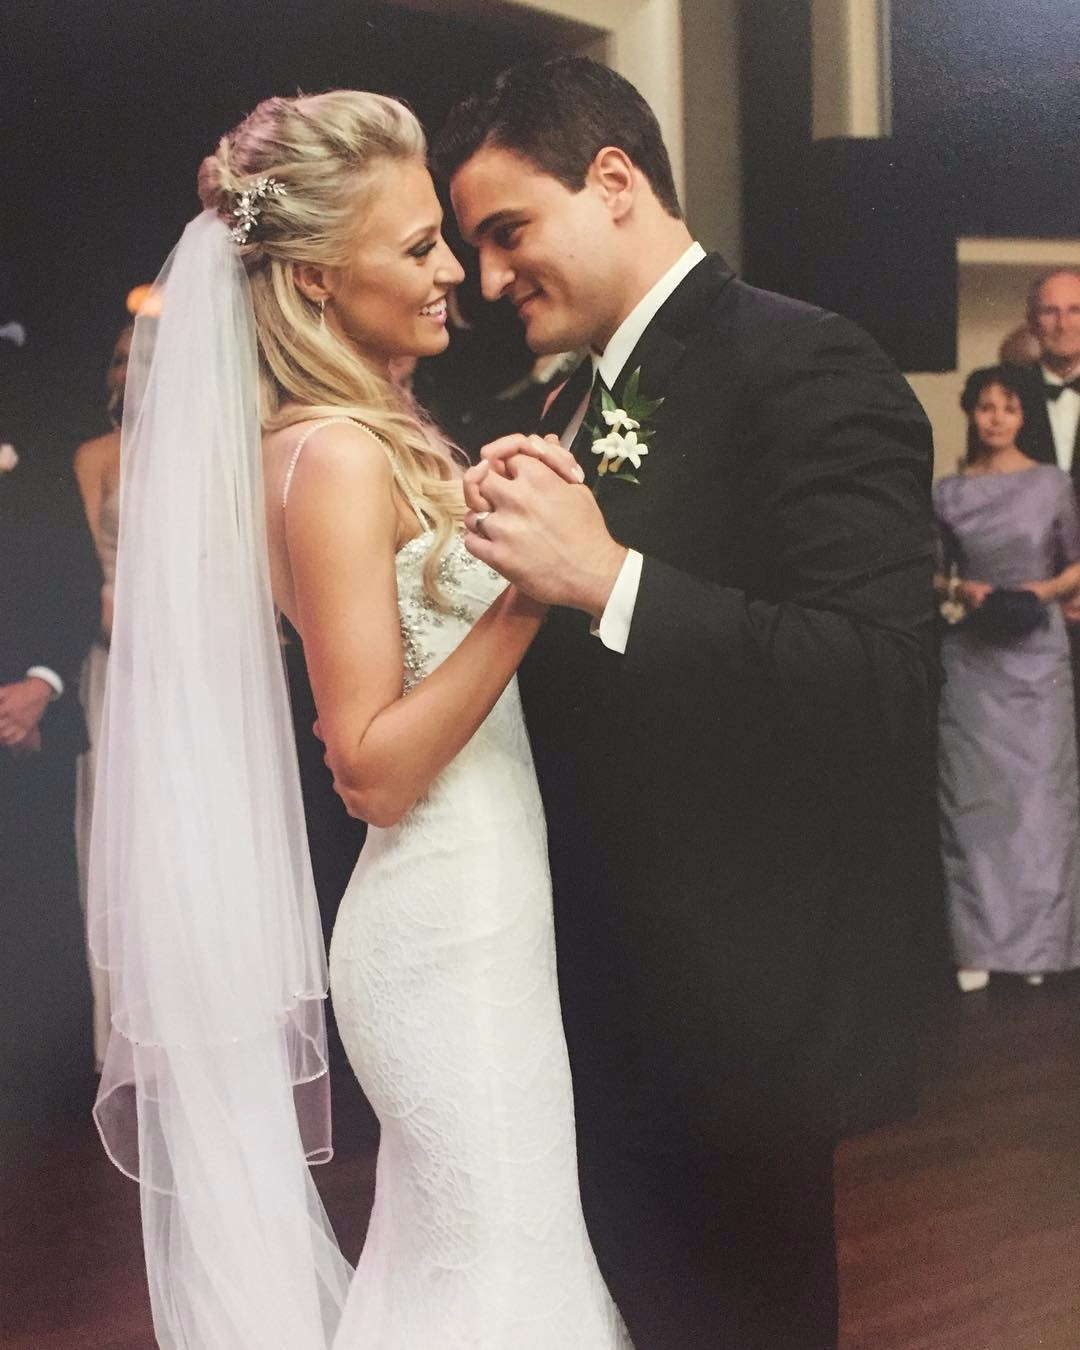 Carley Shimkus looks stunning in her wedding gown and she is smiling as her husband, Peter Buchignani give a glance at her